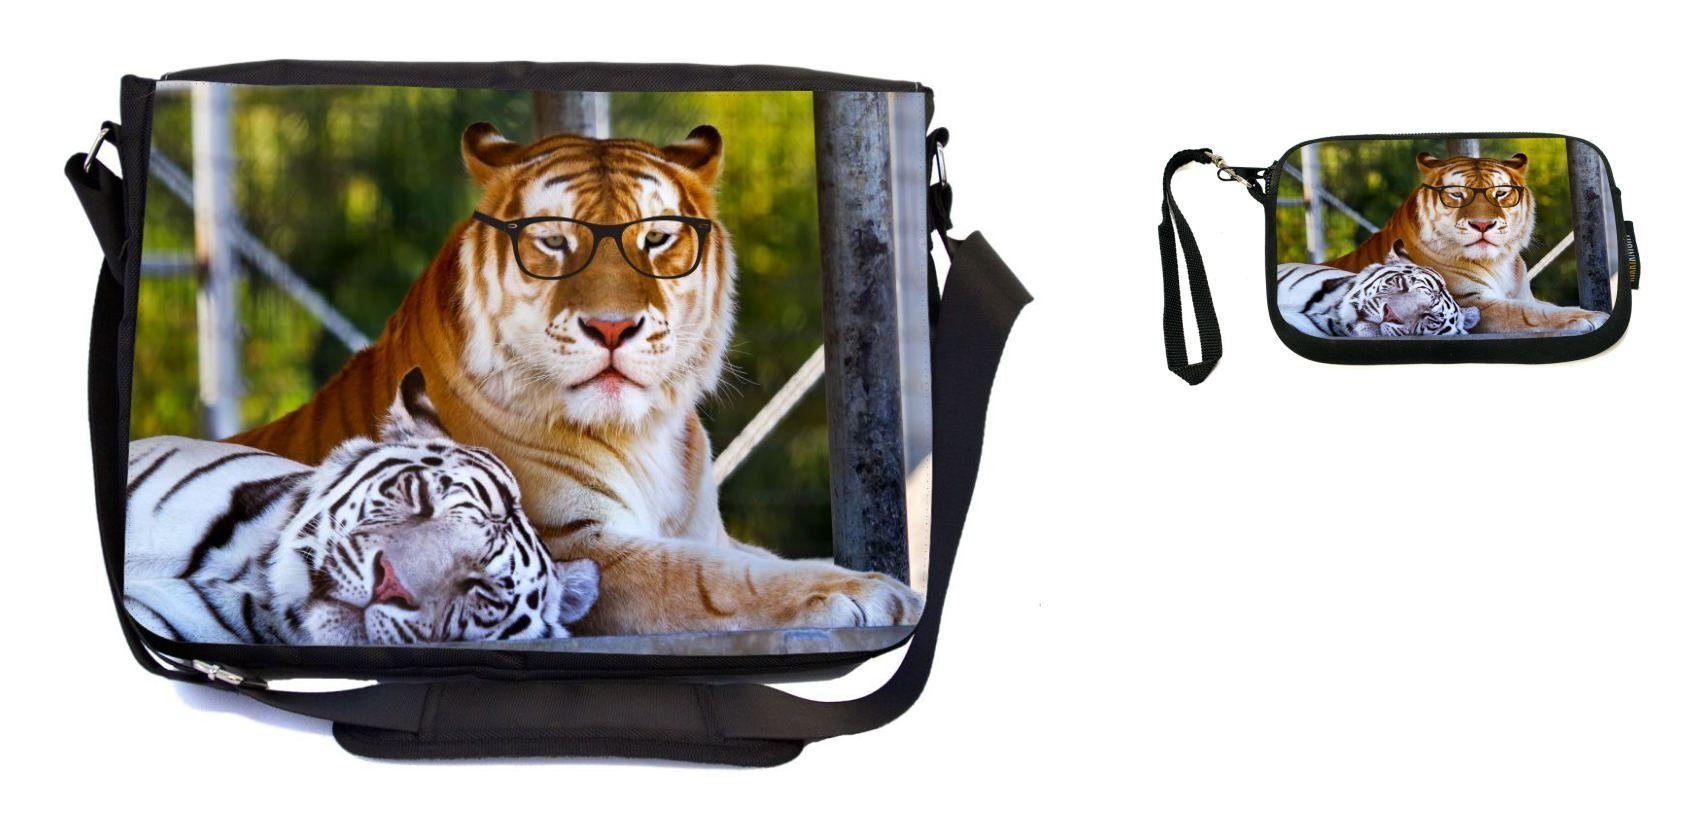 Rikki Knight Hipster Bengal Tigers Resting with Glasses Design Messenger Bag - School Bag - Laptop Bag - with Padded Insert - Includes UKBK Premium Coin Purse by Rikki Knight